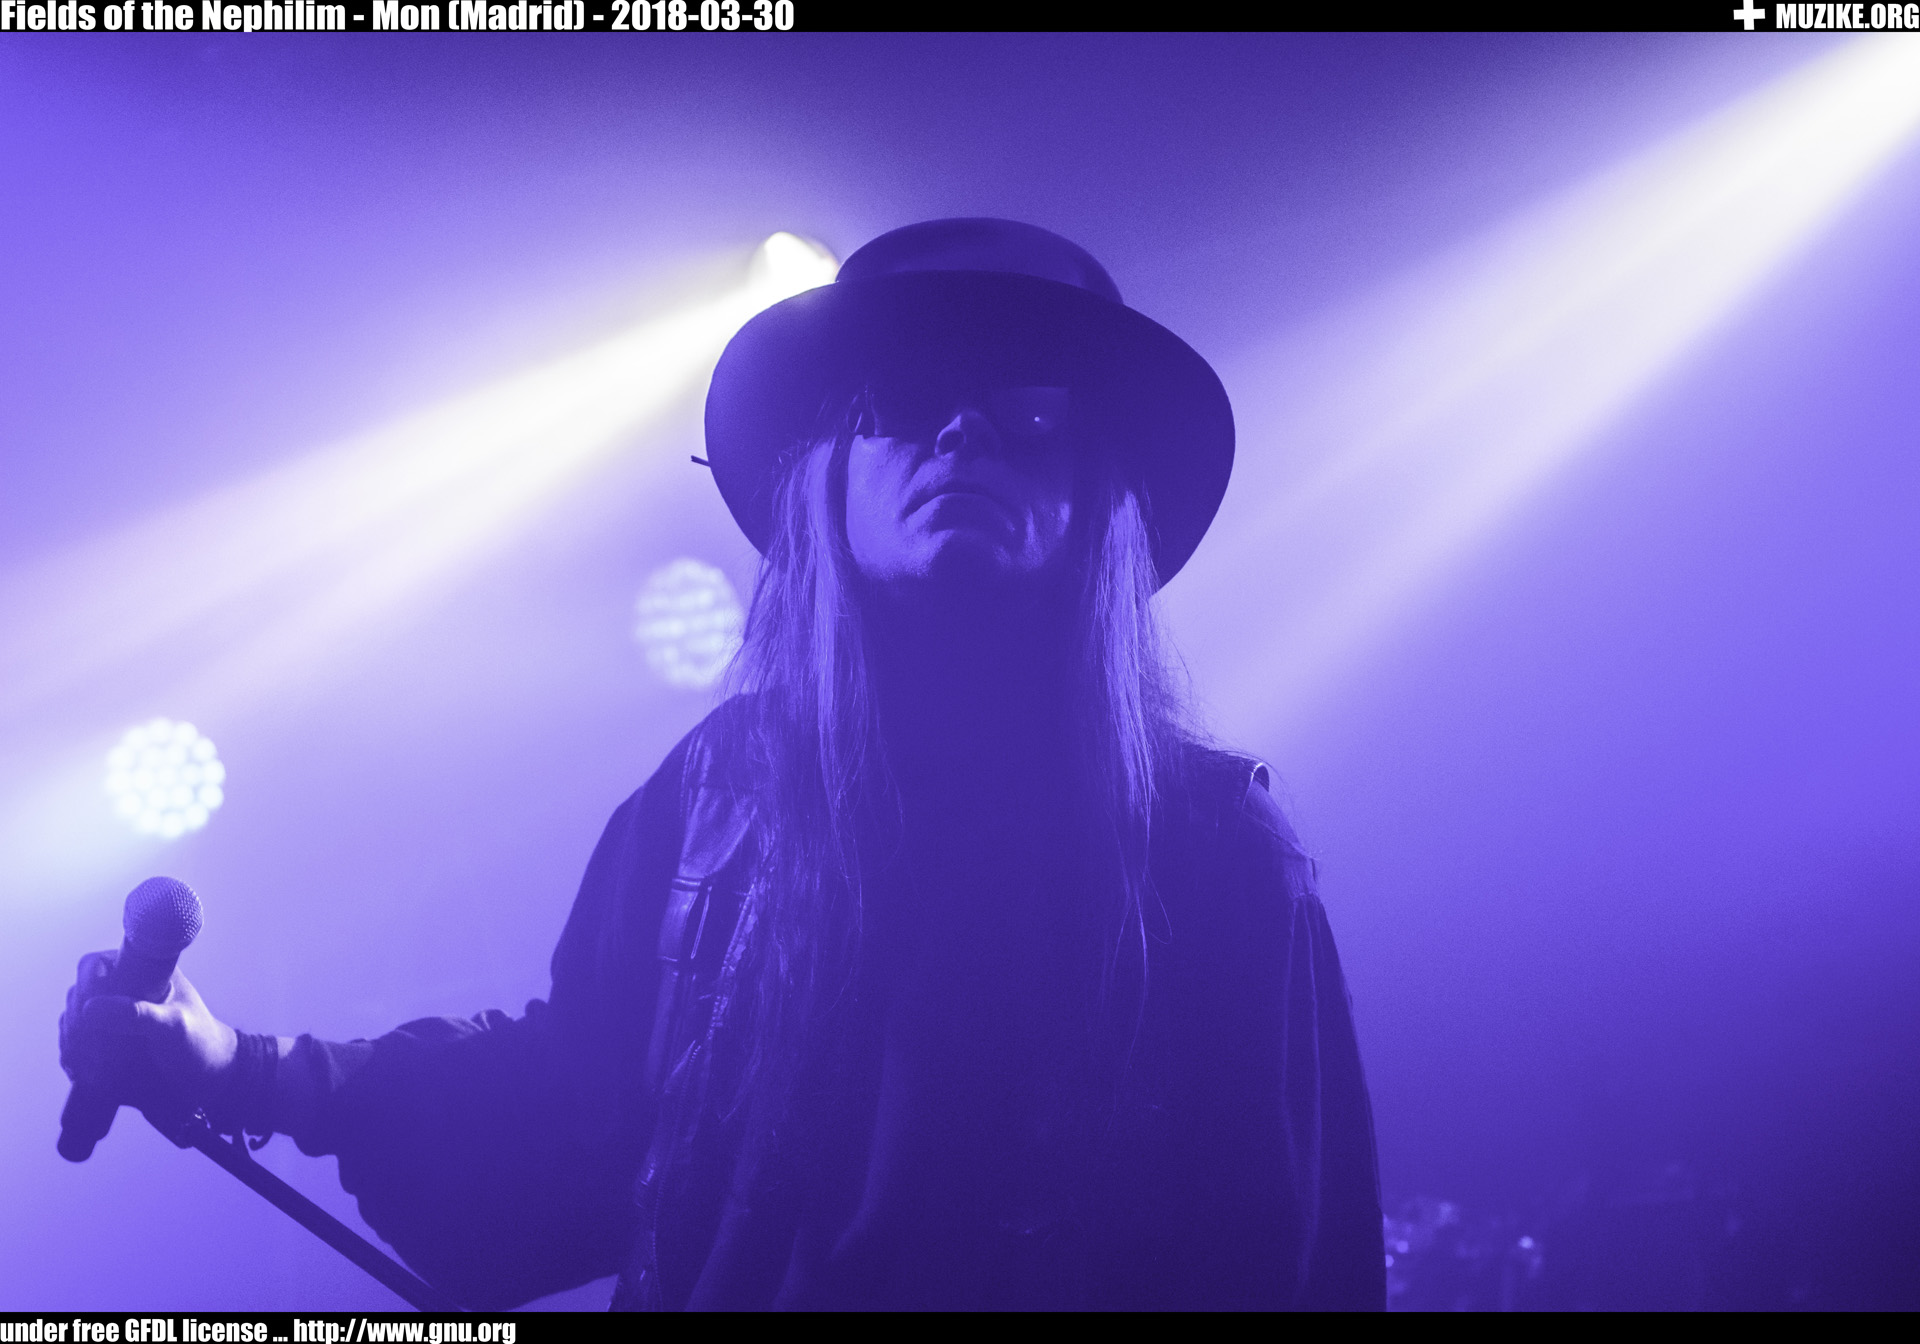 Fields of the Nephilim - Mon (Madrid)